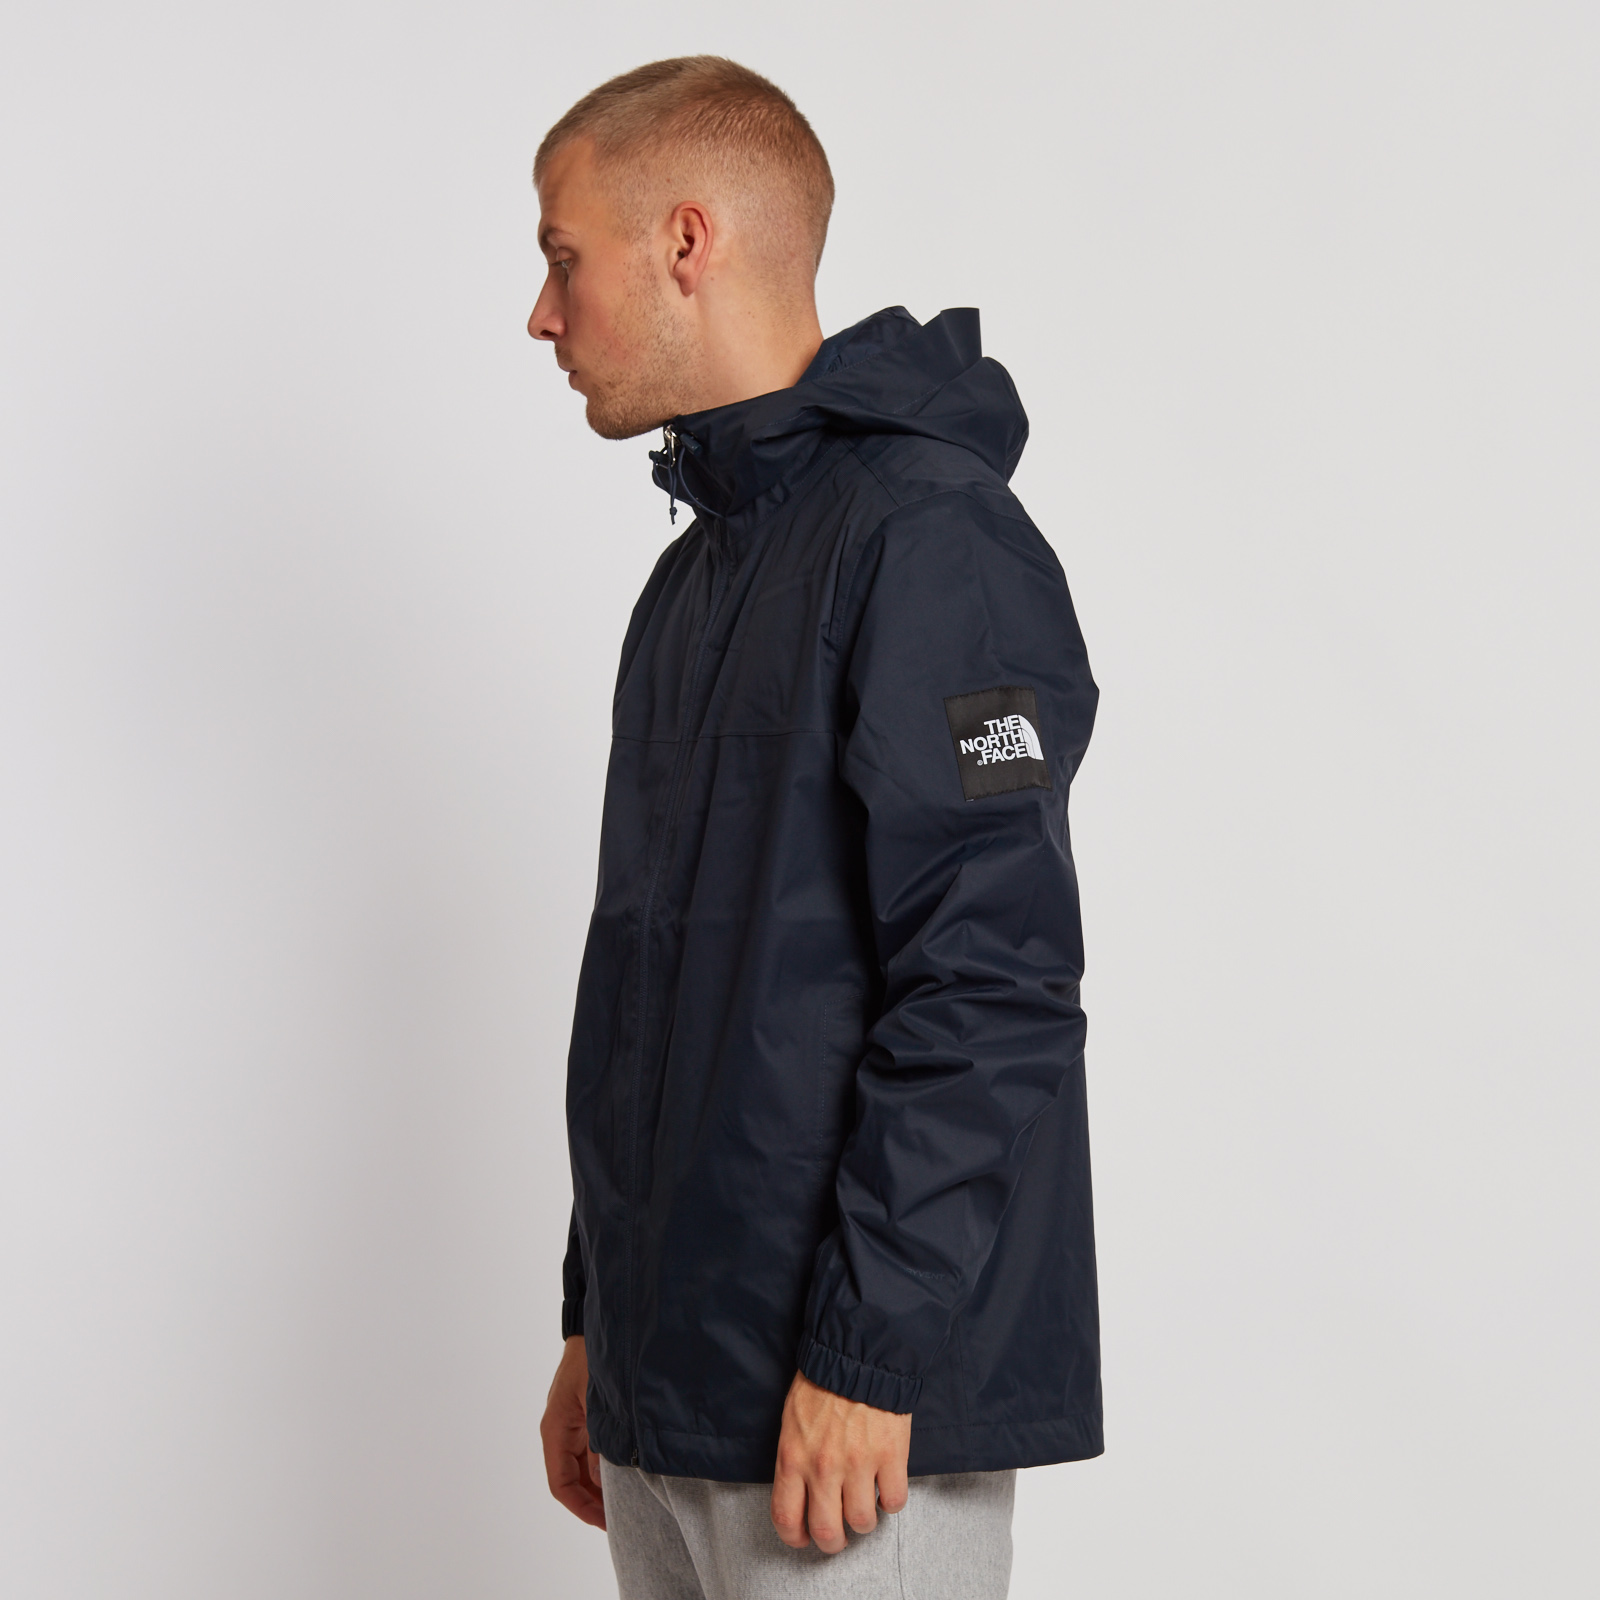 f0ce83006 The North Face Mountain Quest Jacket - T0cr3qh2g - Sneakersnstuff ...